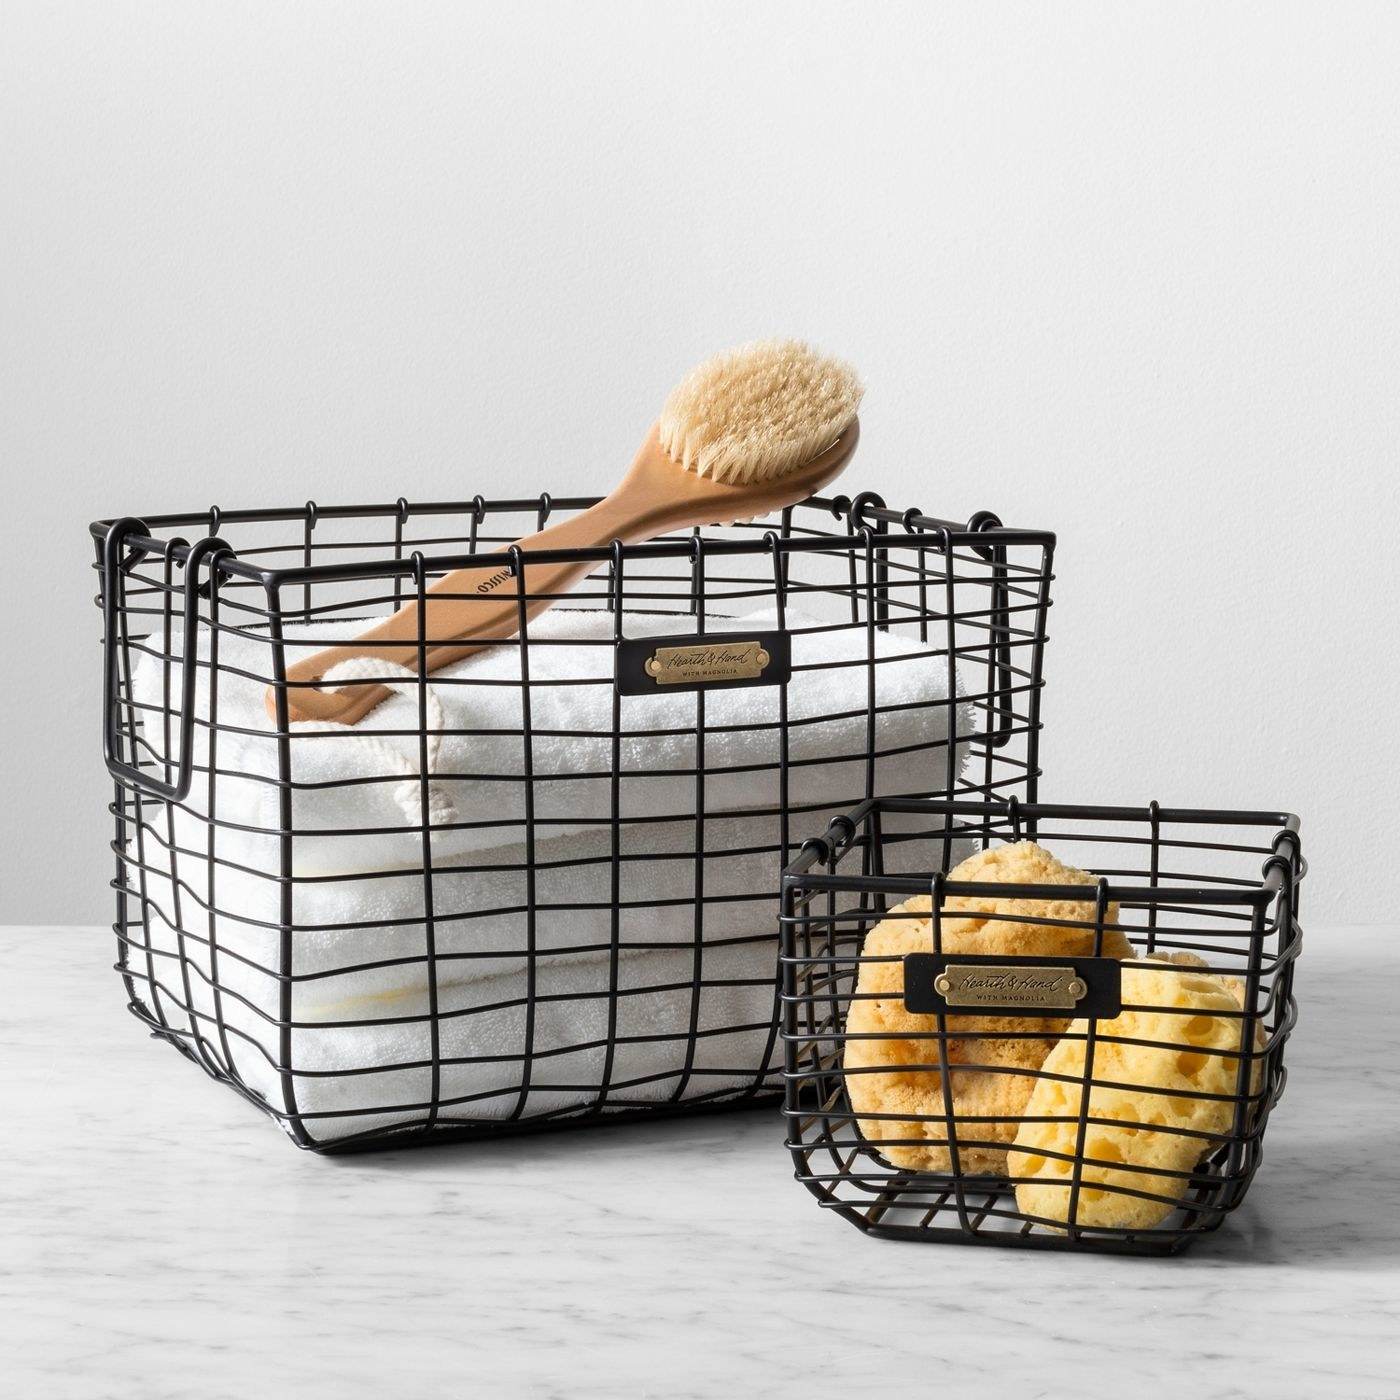 two wire storage baskets filled with bath accessories and towels